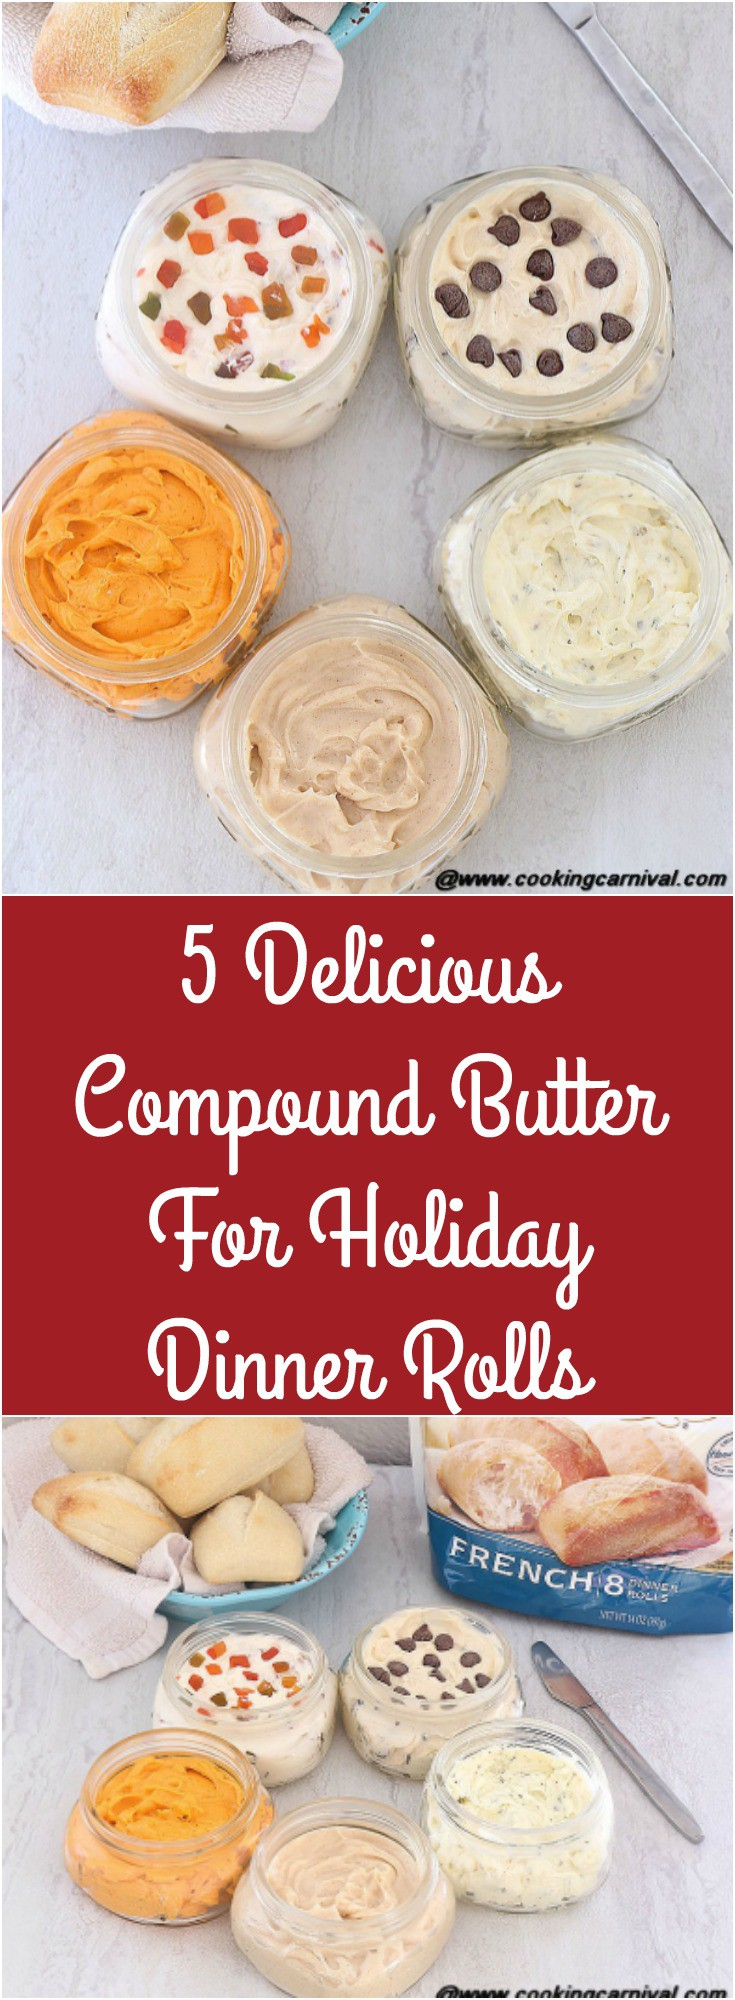 5 delicious Compound Butter For Dinner Rolls